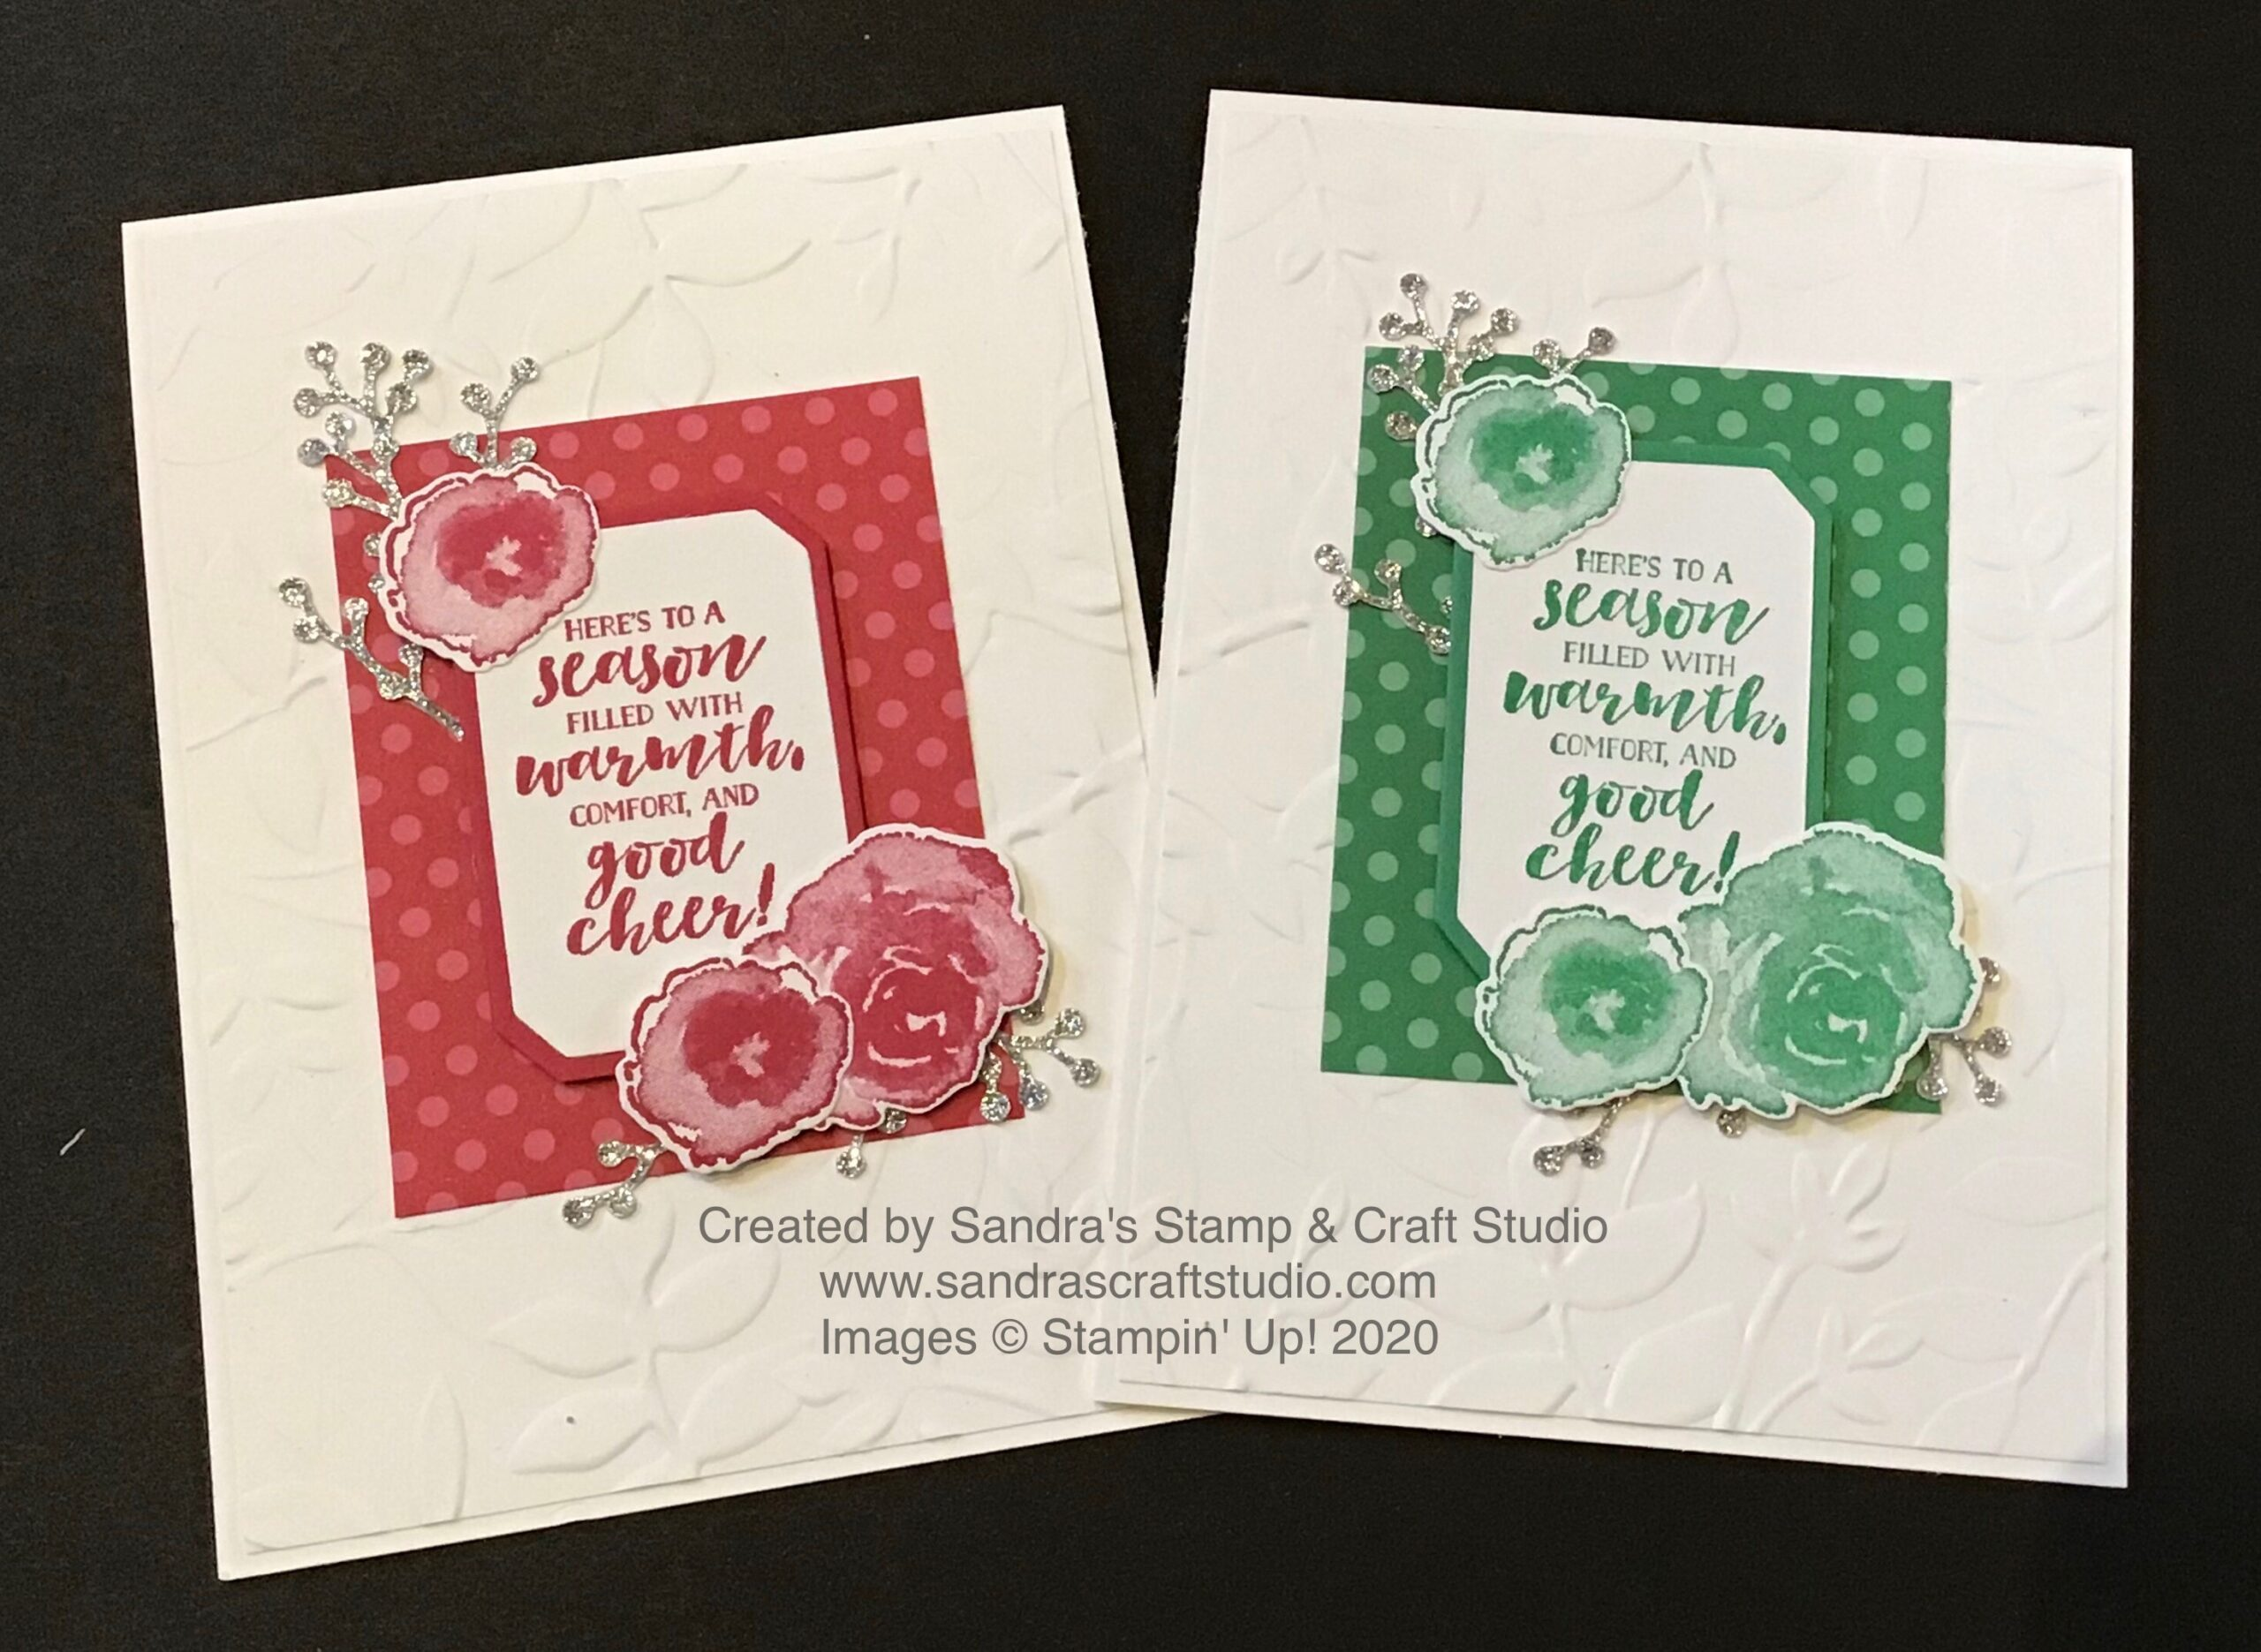 STAMP 'N HOP – Goodbye 2019-2020 Annual Catalogue